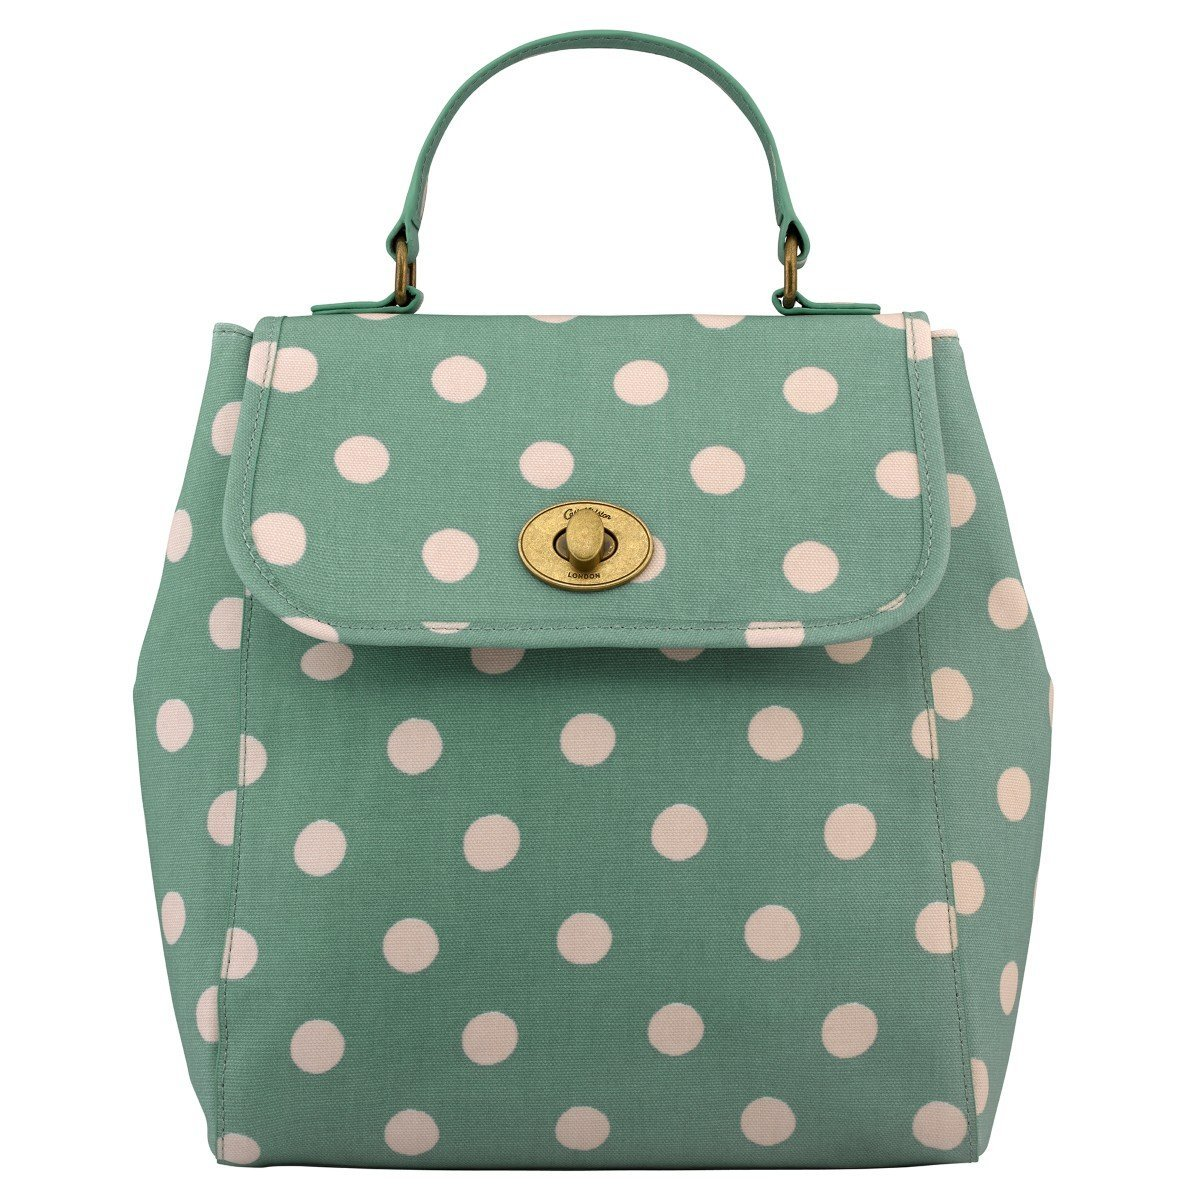 586f4f33894e3 Buy Cath Kidston Matt Oilcloth Turnlock Backpack Rucksack Polka ...